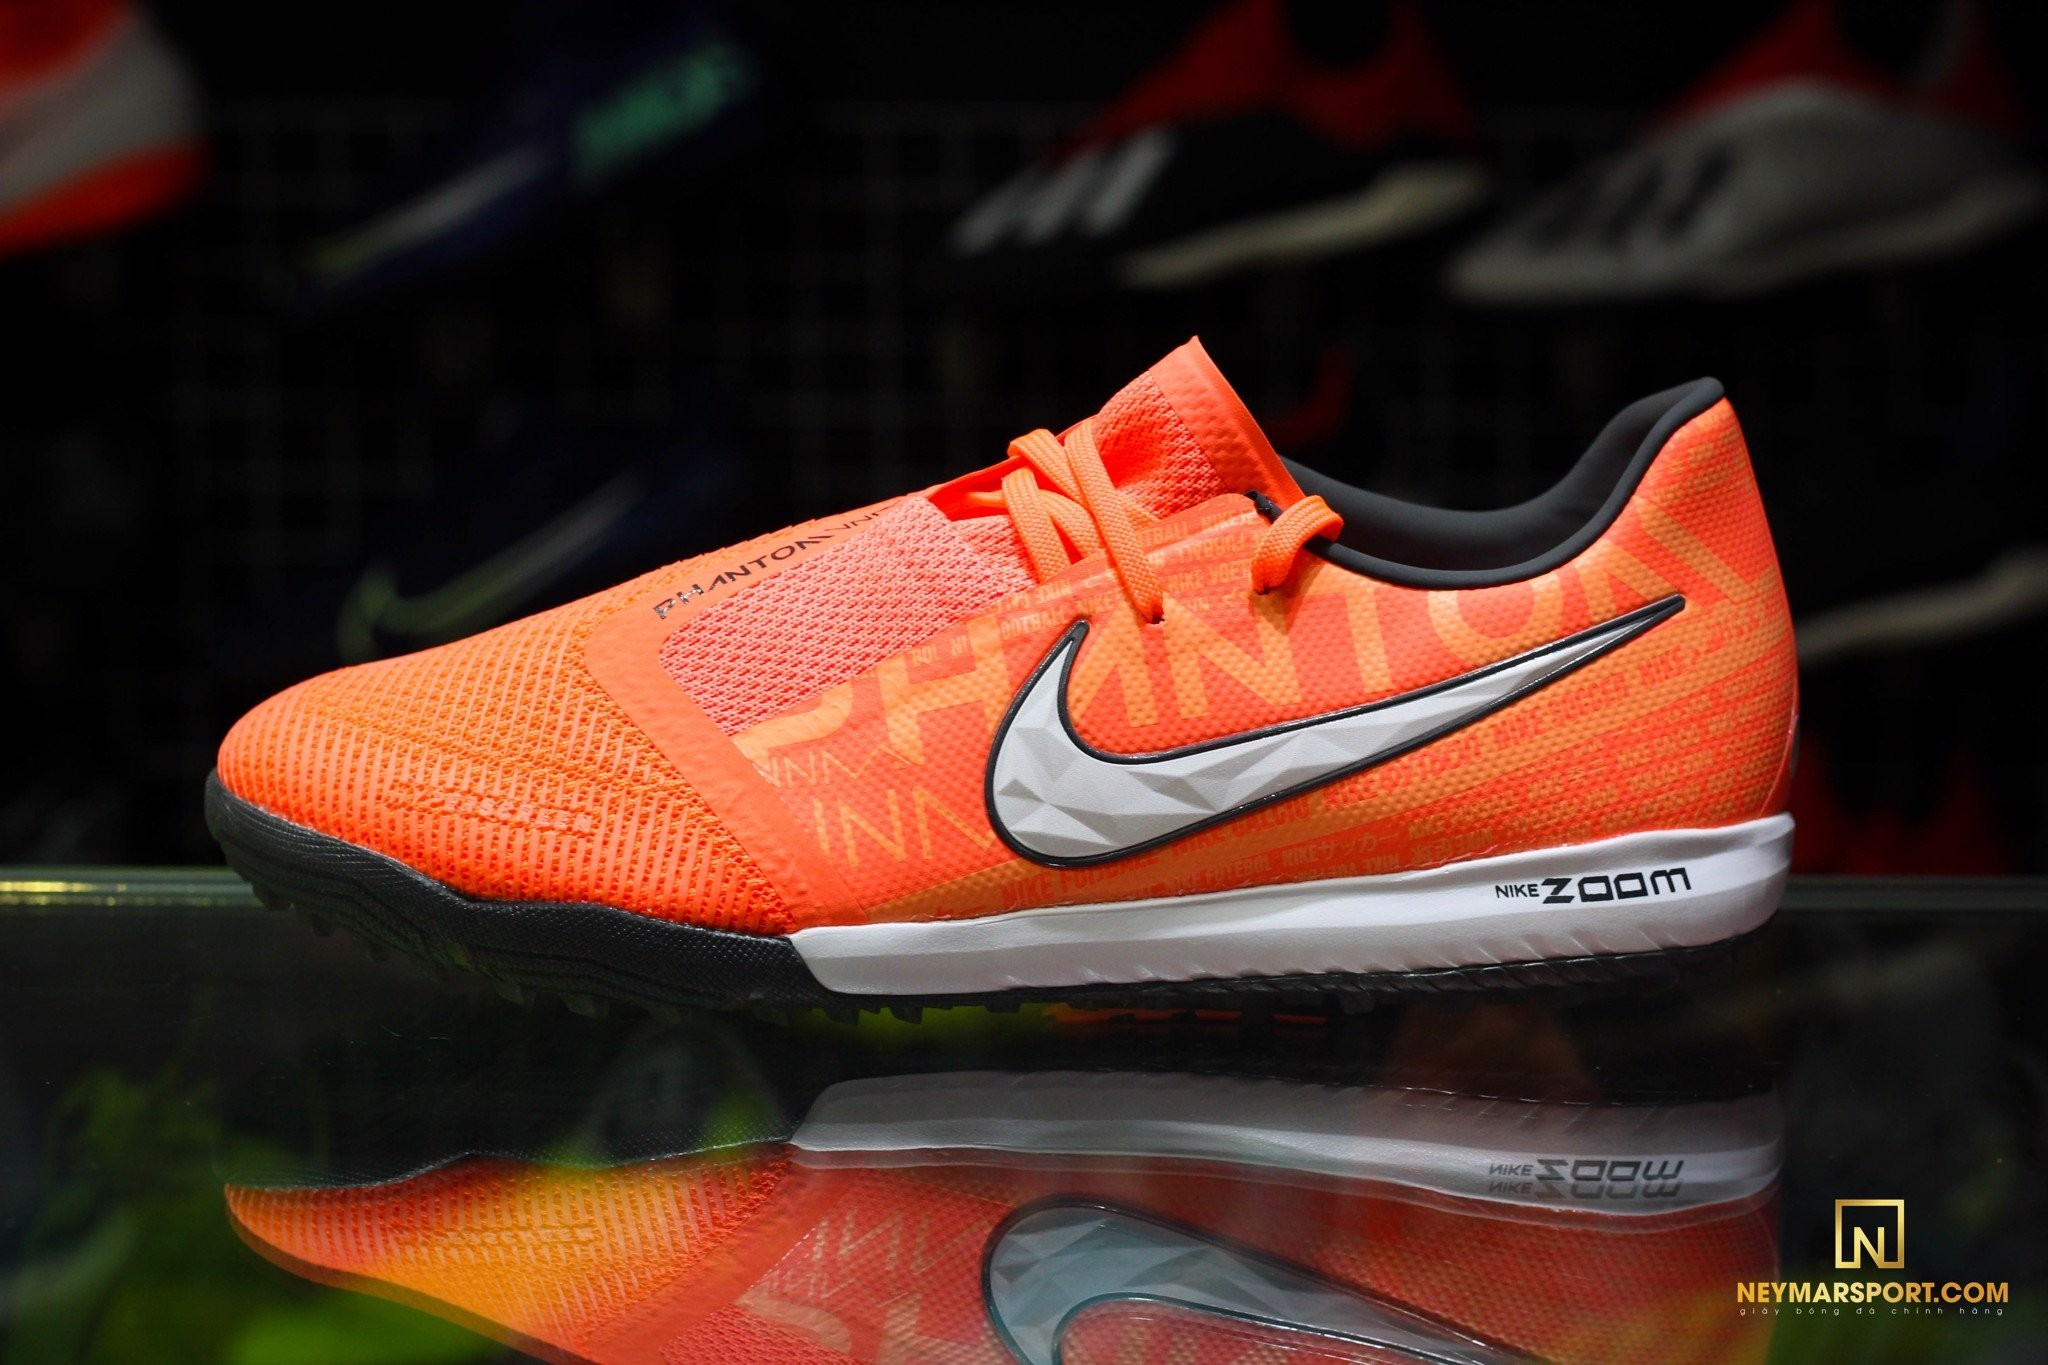 GIÀY ĐÁ BANH NIKE PHANTOM VENOM ZOOM PRO TF FIRE - BRIGHT MANGO/WHITE/ORANGE PULSE